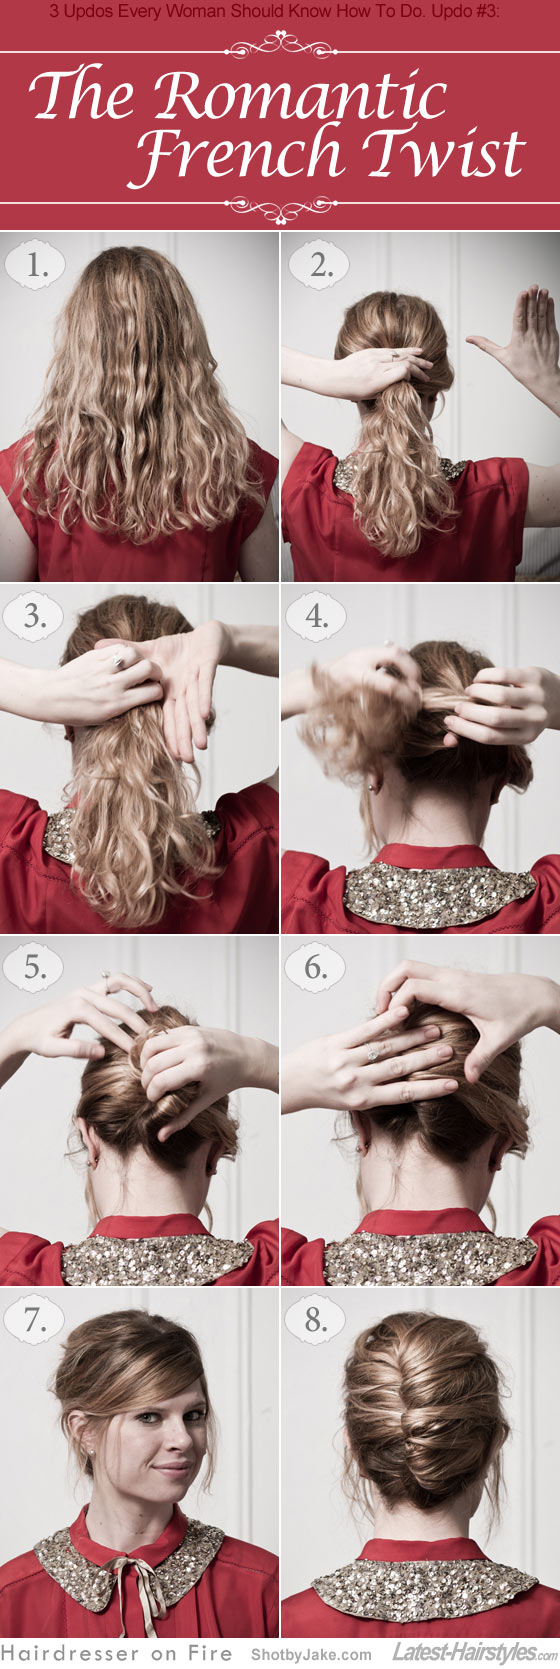 The French Twist hairstyle updo tutorial